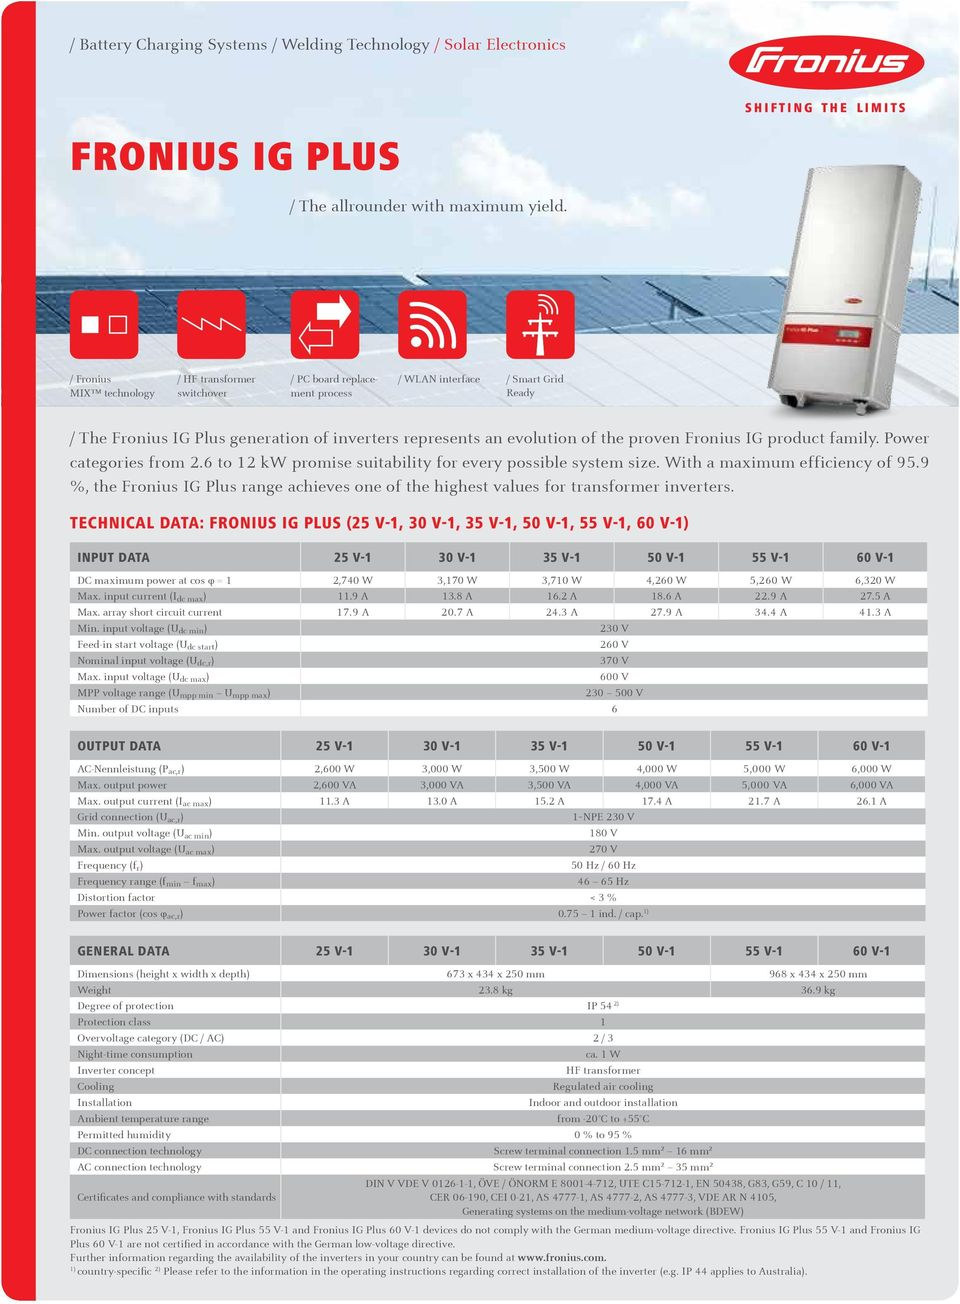 proven Fronius IG product family. Power categories from 2.6 to 12 kw promise suitability for every possible system size. With a maximum efficiency of 95.